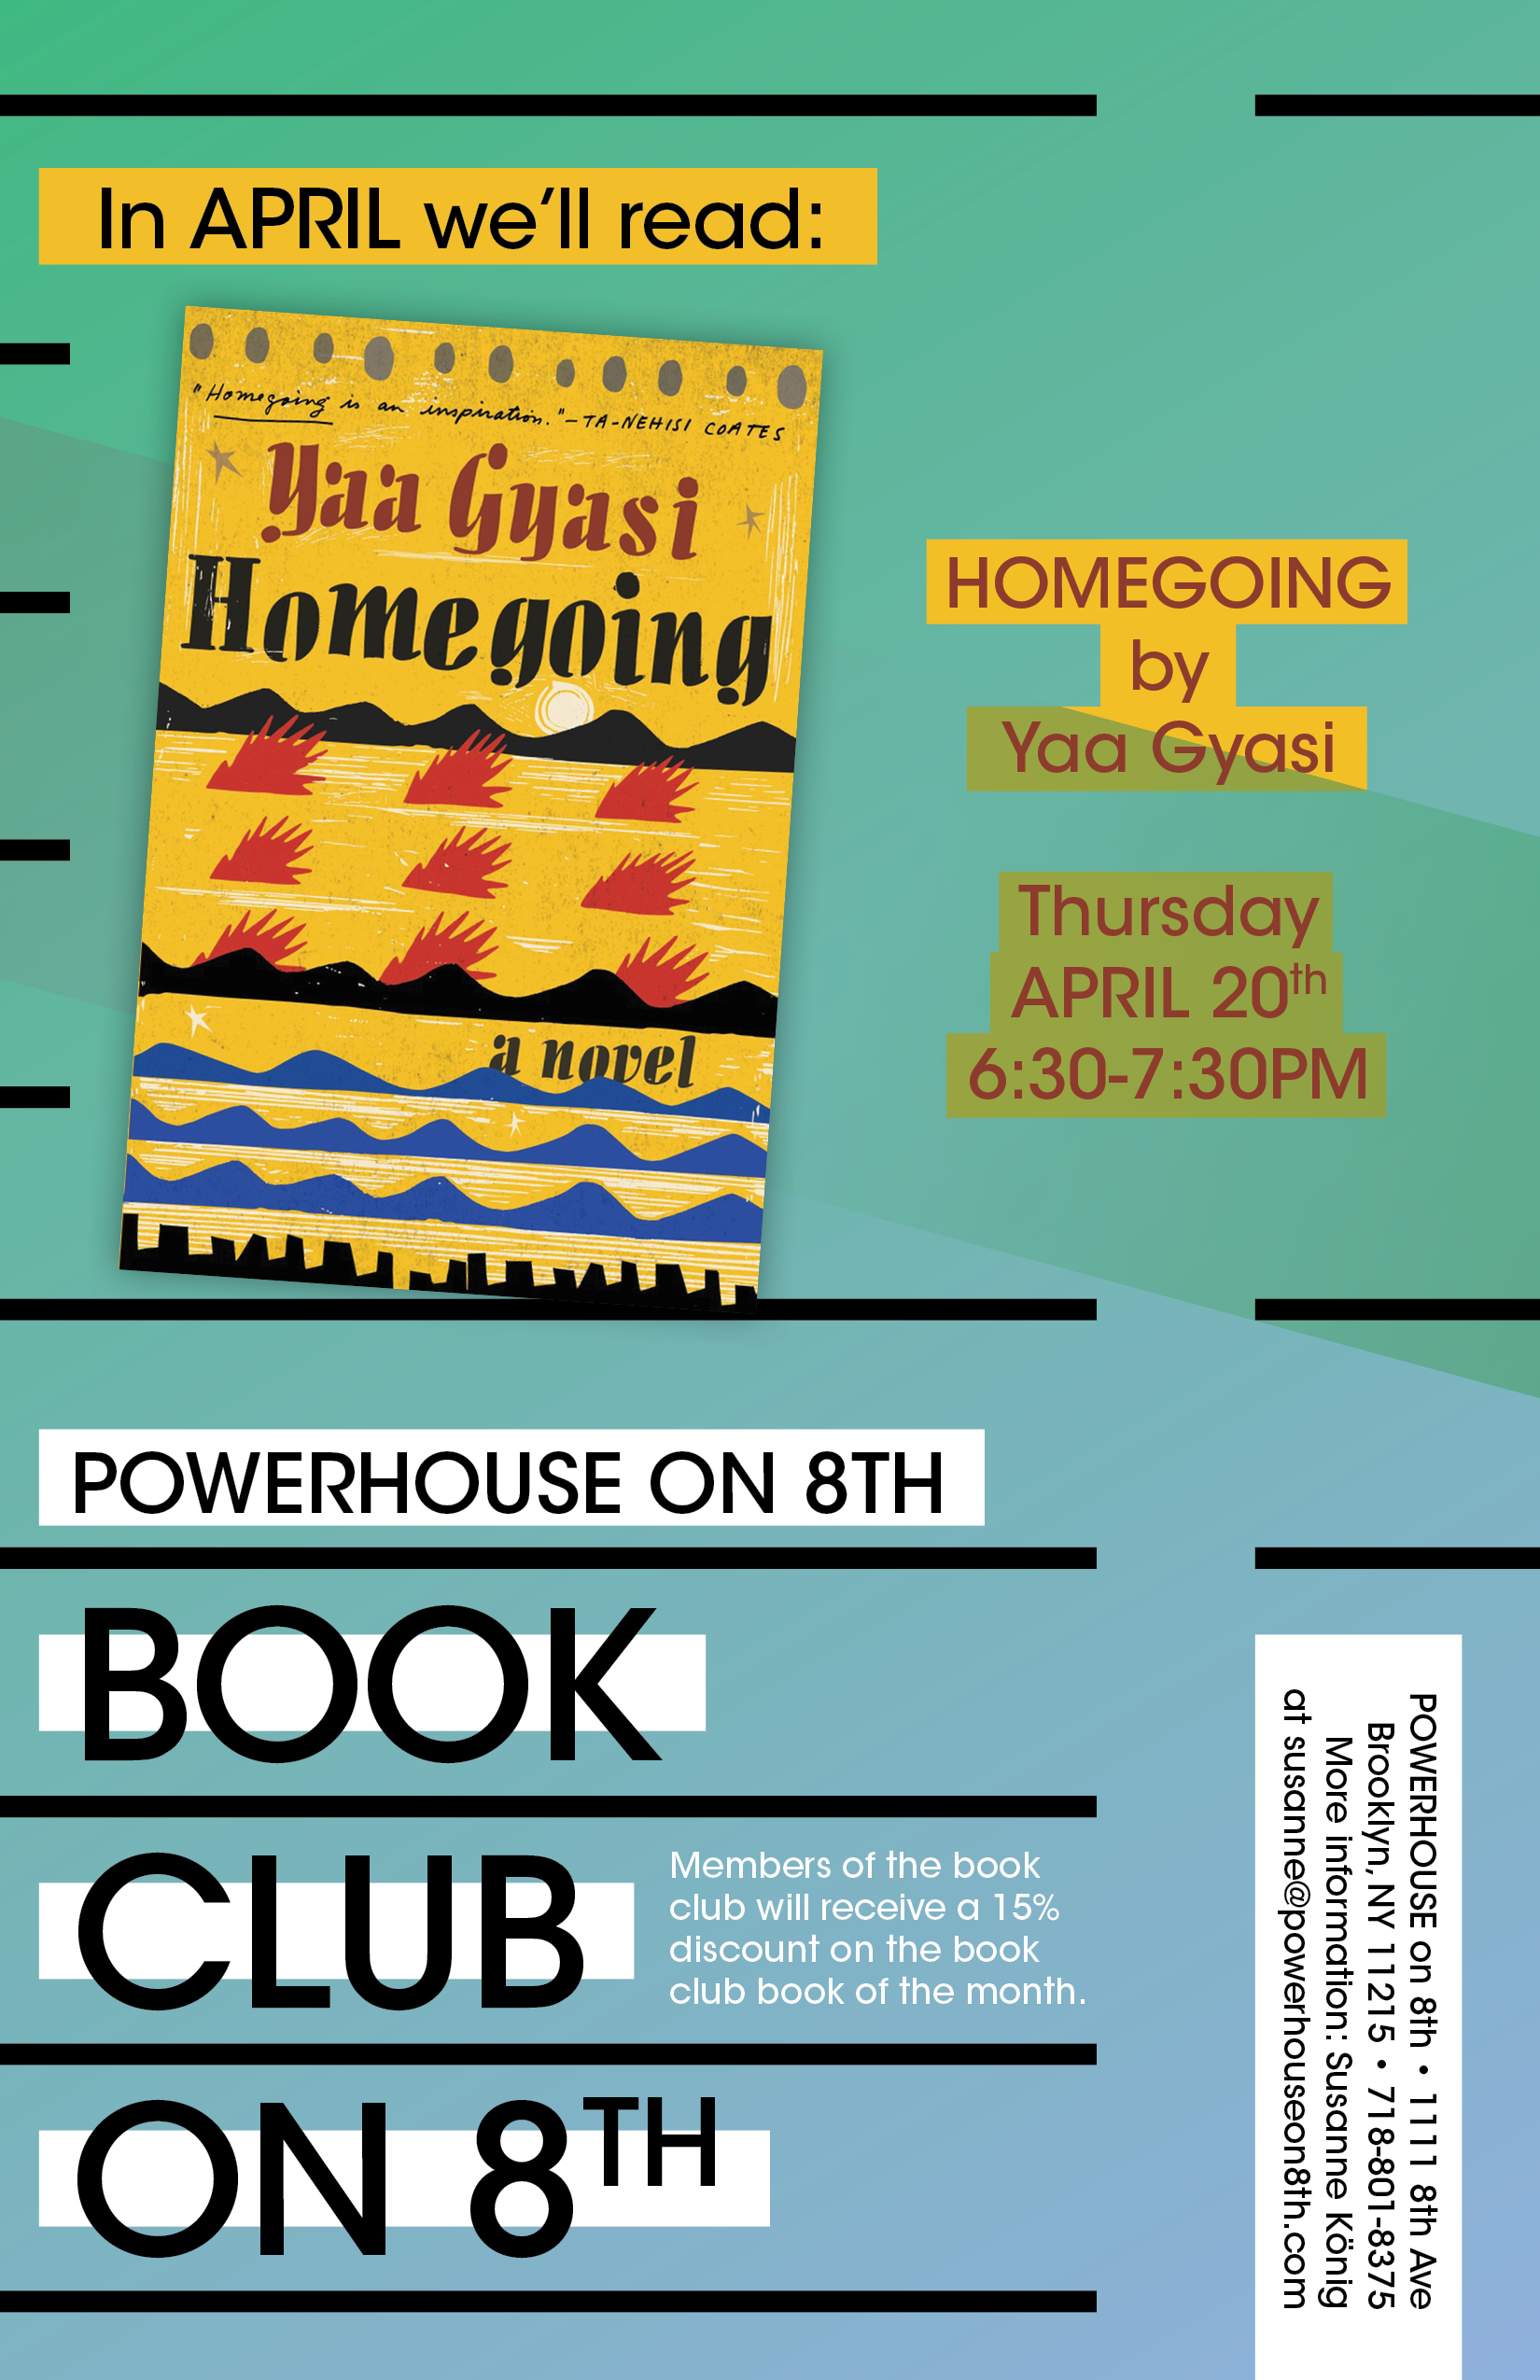 Book Club on 8th: Homegoing by Yaa Gyasi